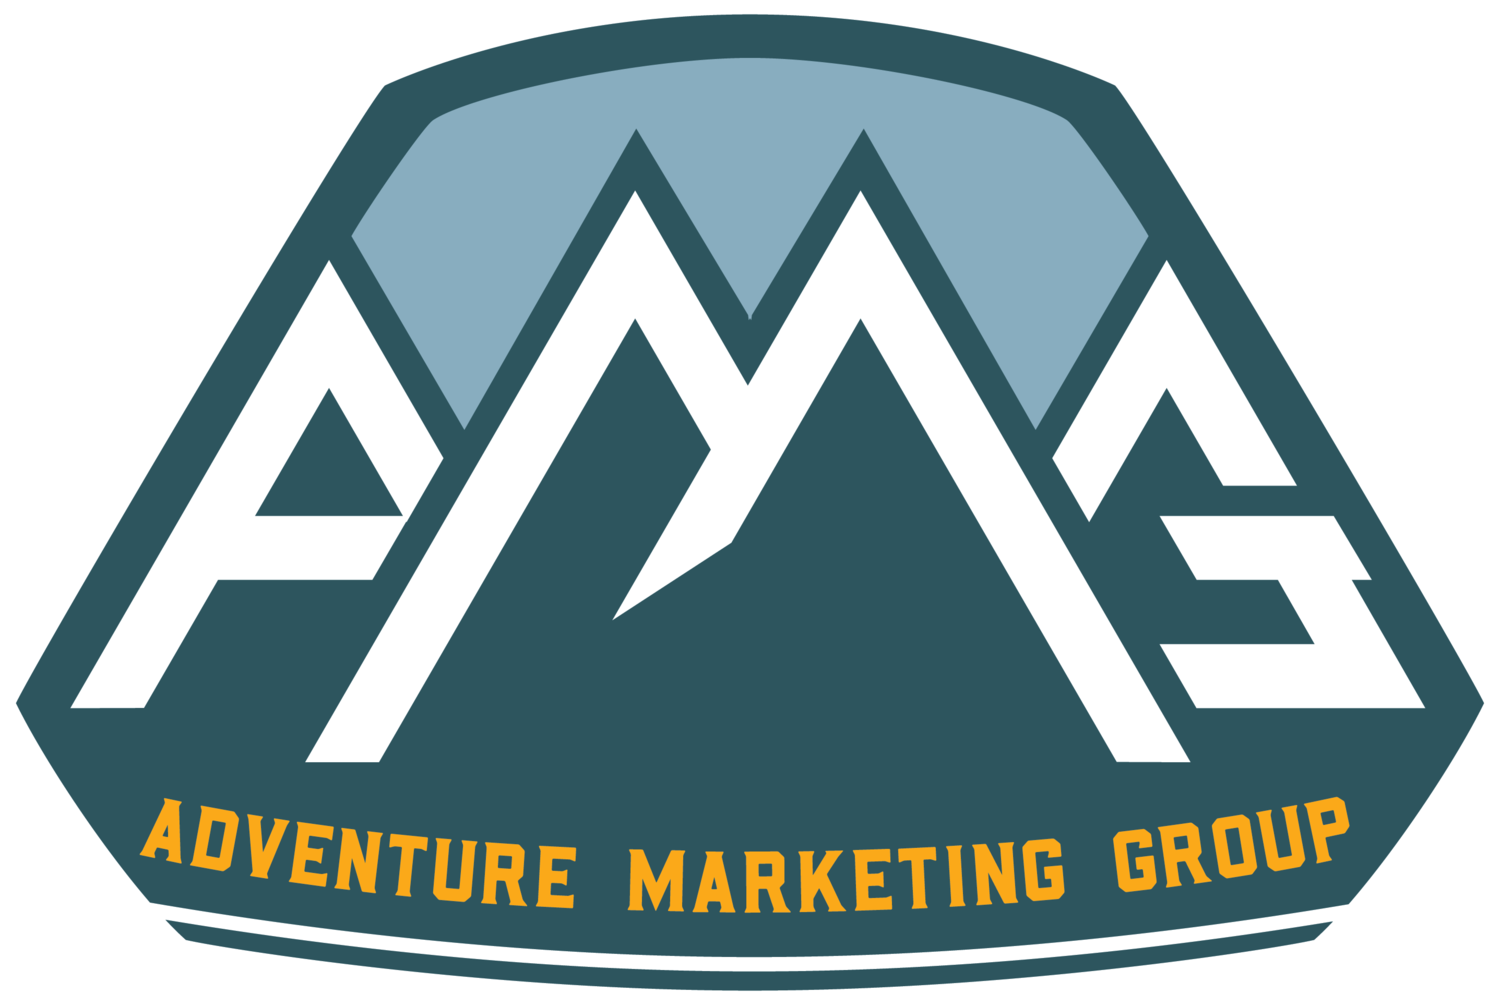 Adventure Marketing Group